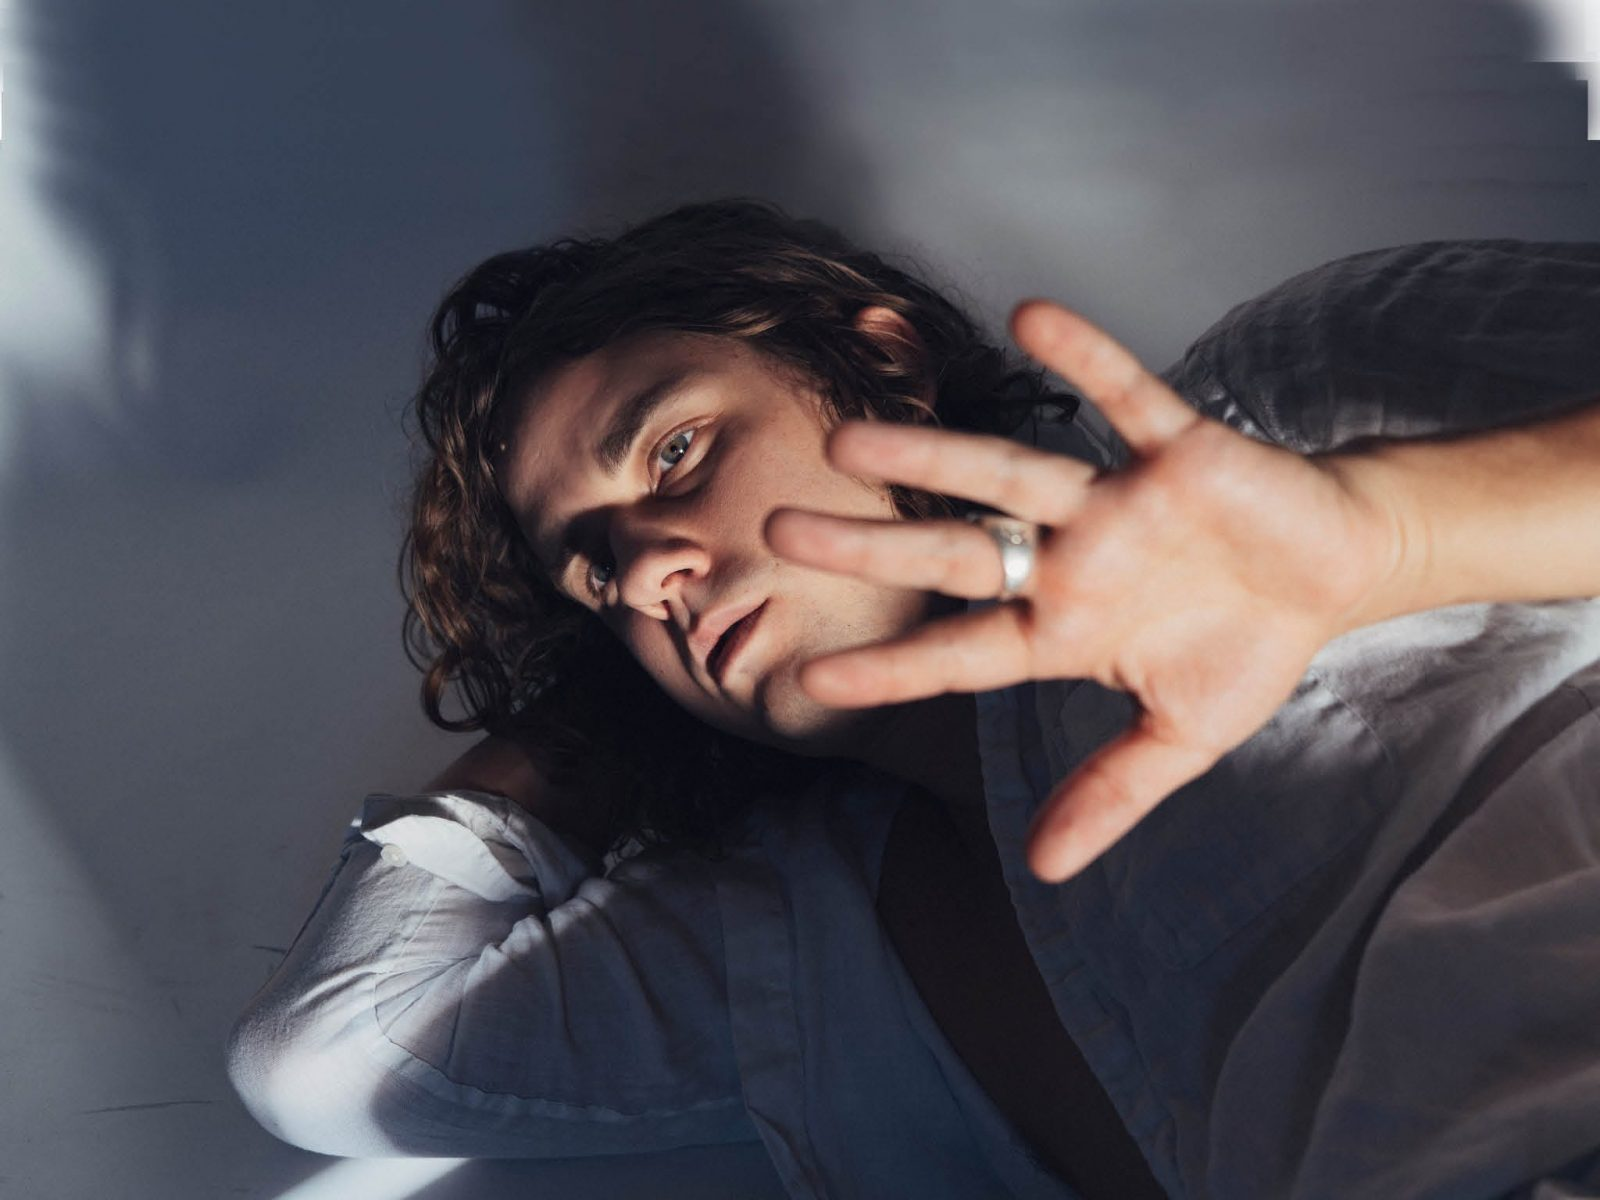 Headshot of Kevin Morby with his hand covering half his face